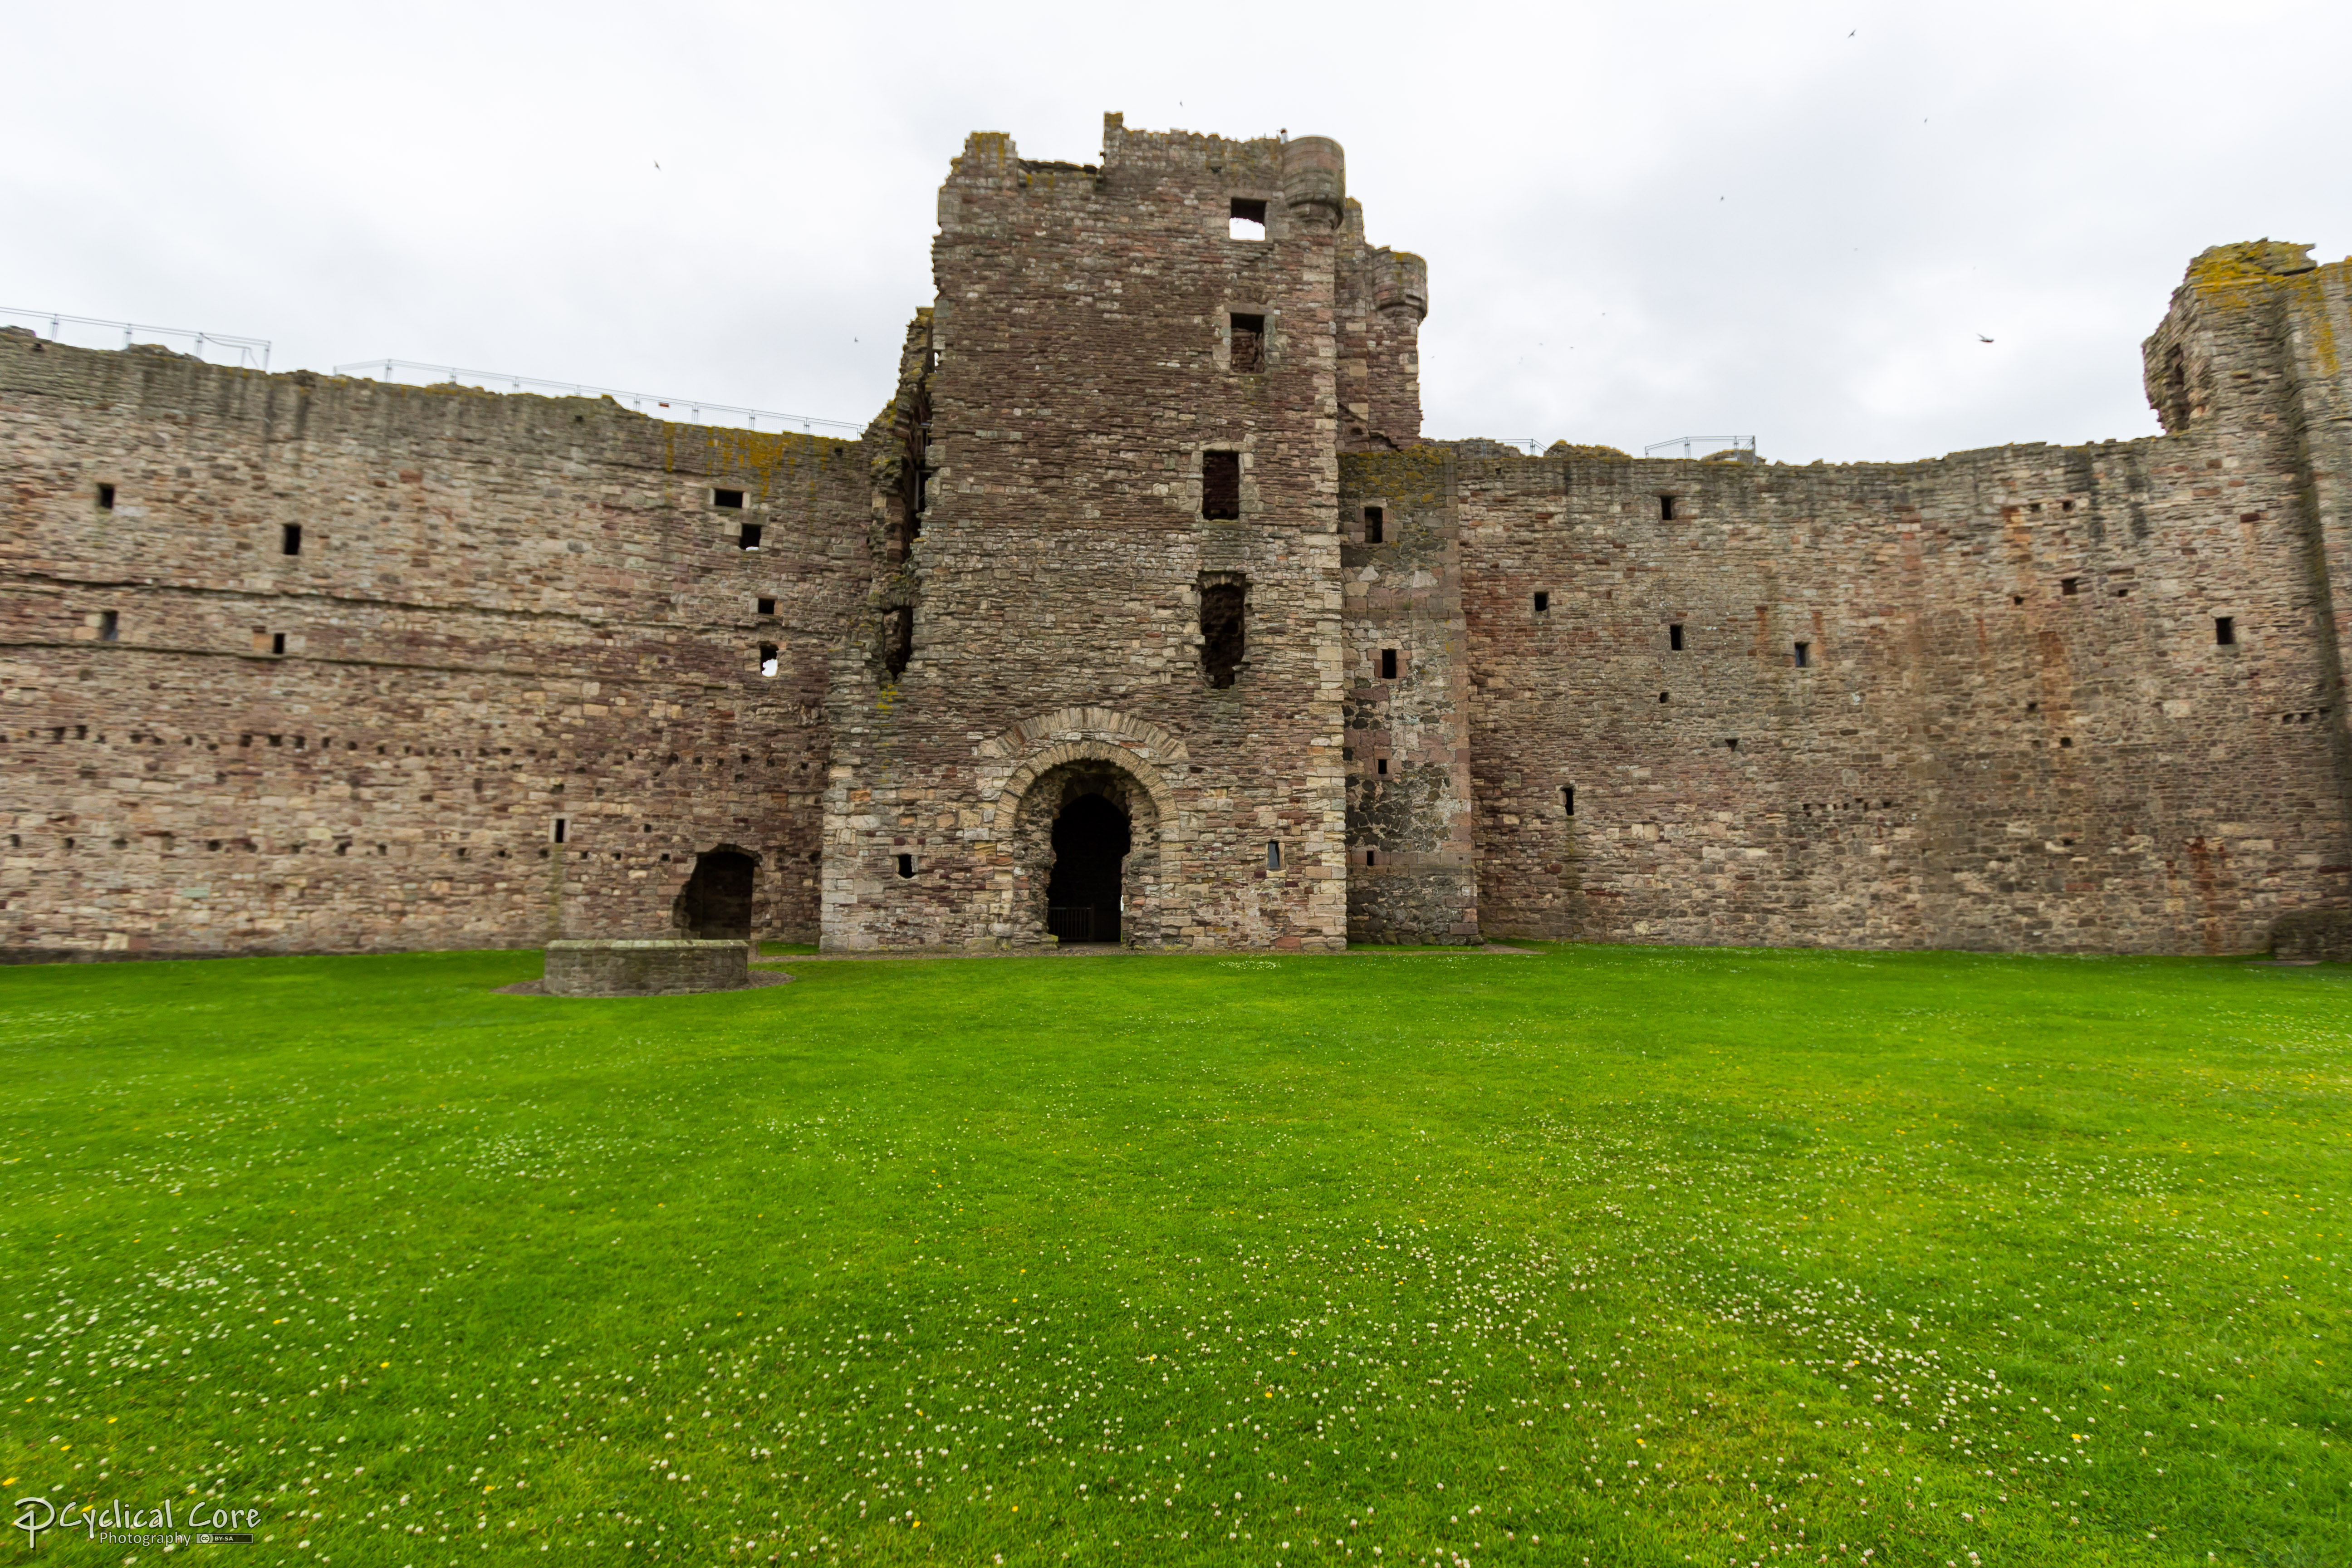 Inner Curtain Wall : What is a inner curtain wall for castles